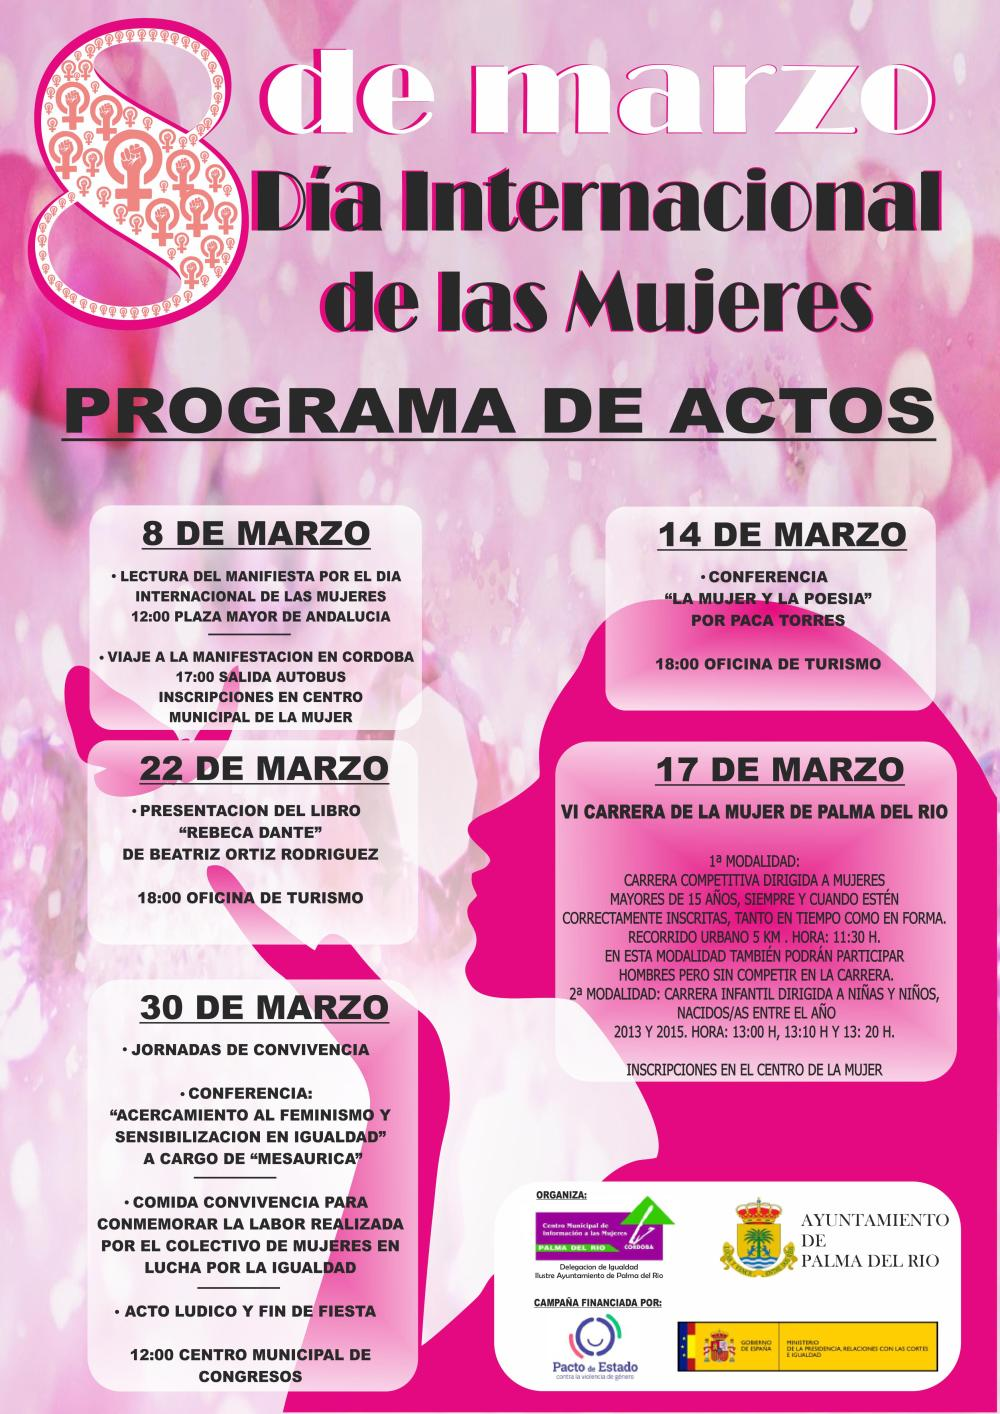 https://www.palmadelrio.es/sites/default/files/programa_dia_mujer_2019.jpg